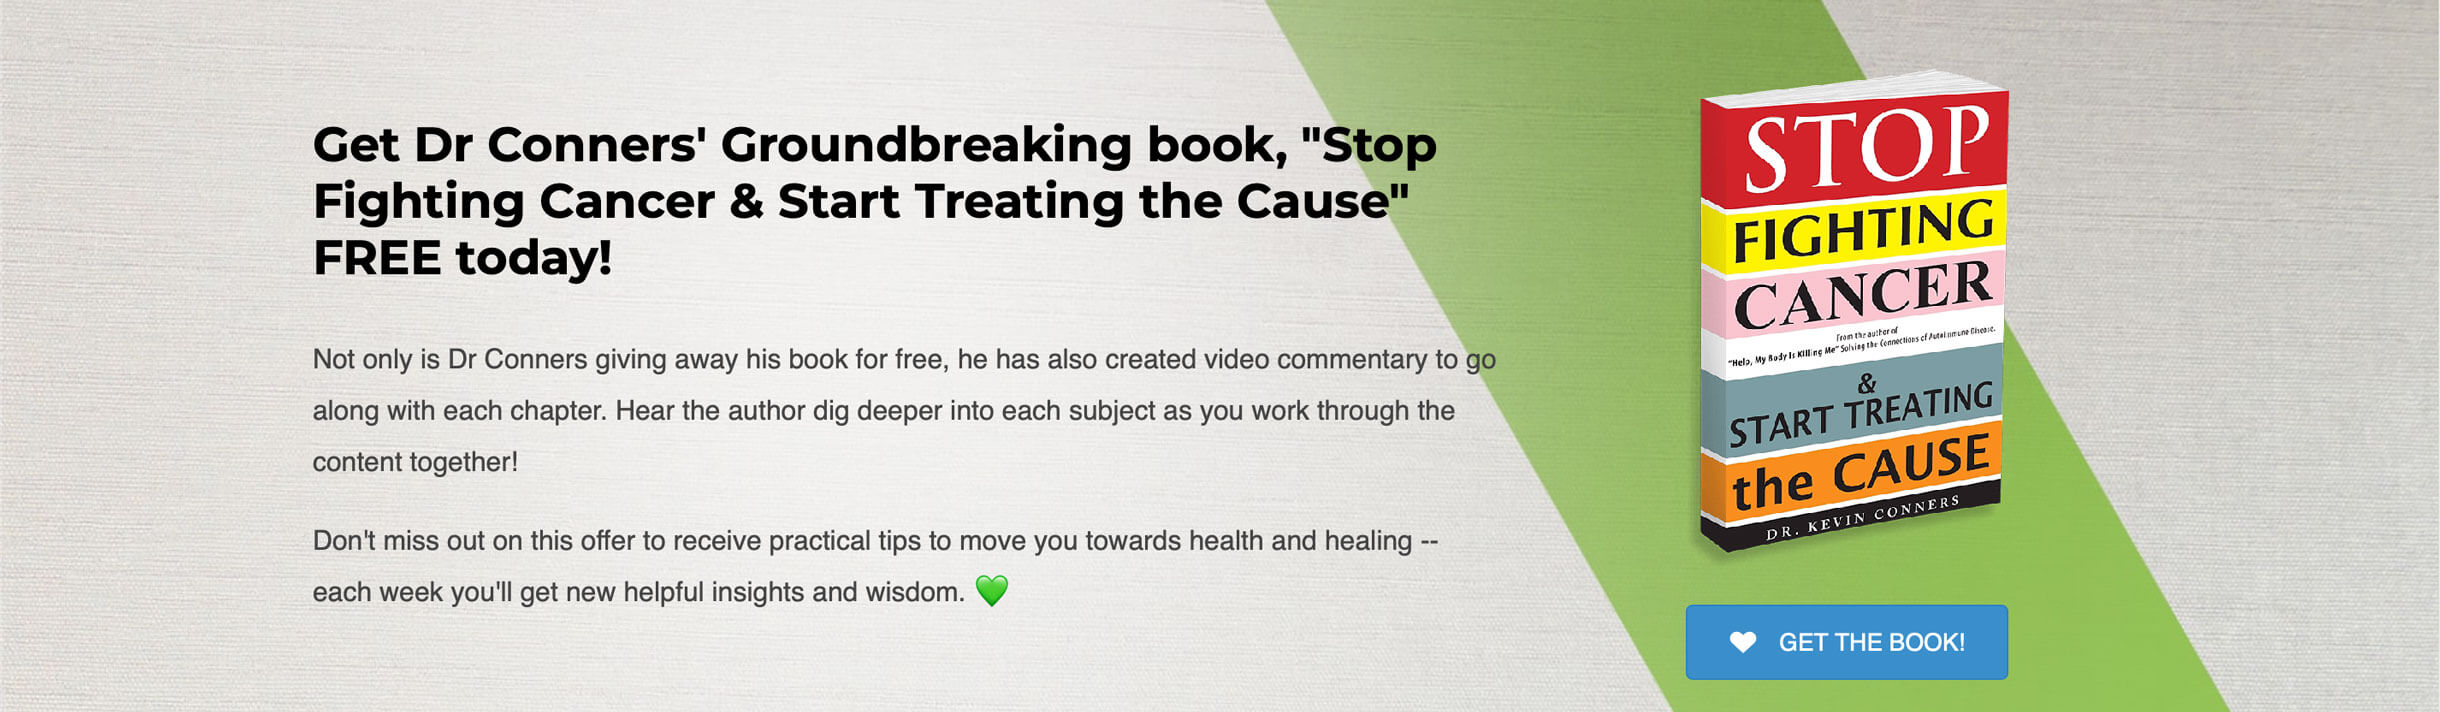 dr-kevin-conners-clinic-live-free-book-stop-fighting-cancer